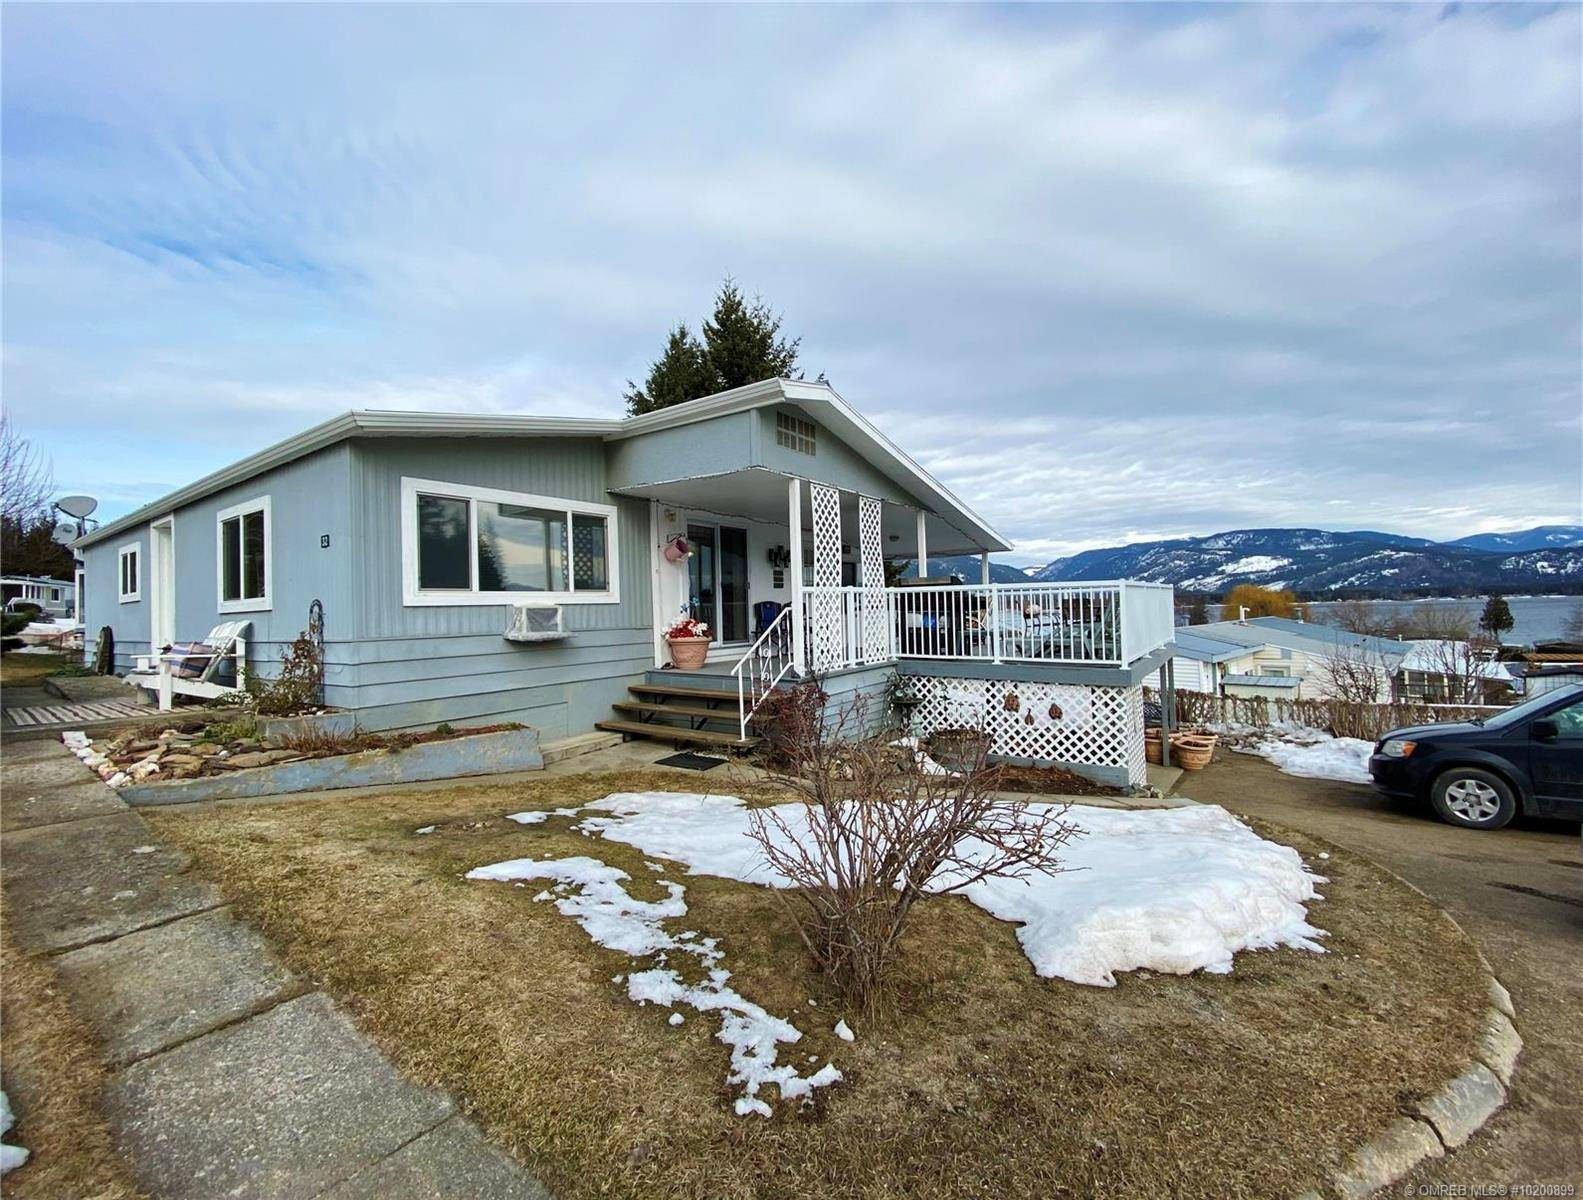 Home for sale at 2932 Buckley Rd Unit 32 Sorrento British Columbia - MLS: 10200899